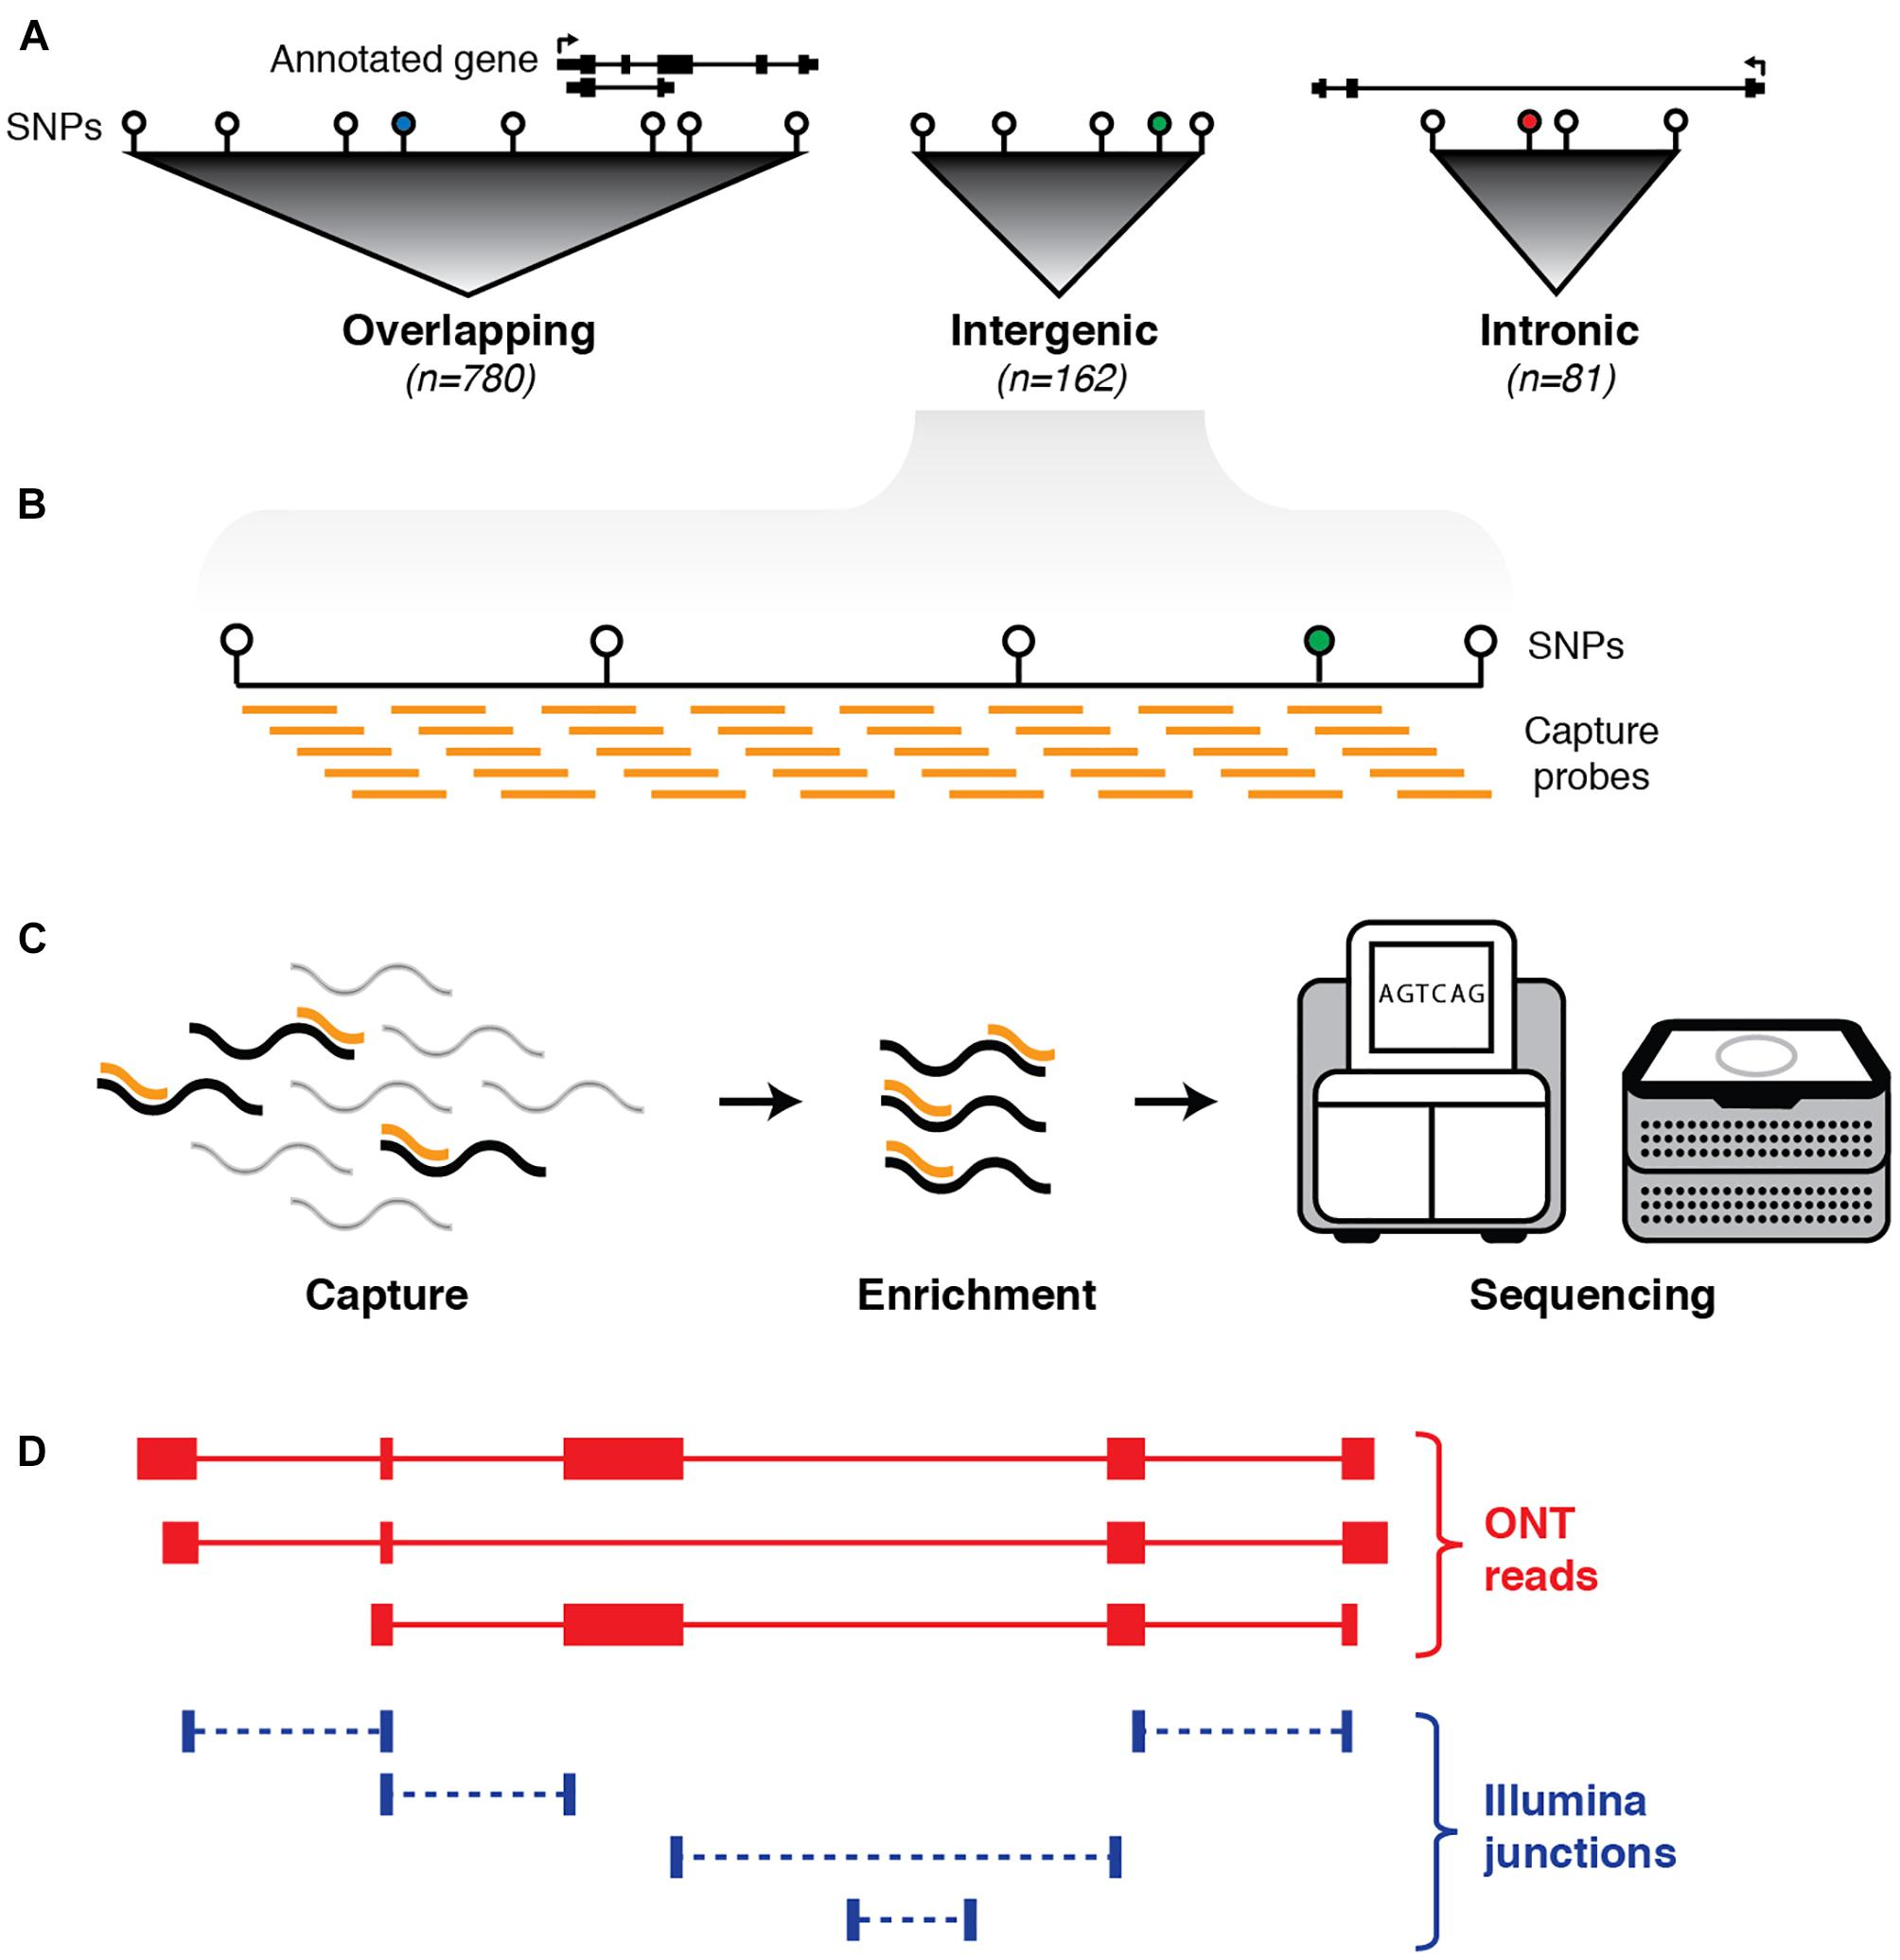 Frontiers | Targeted, High-Resolution RNA Sequencing of Non